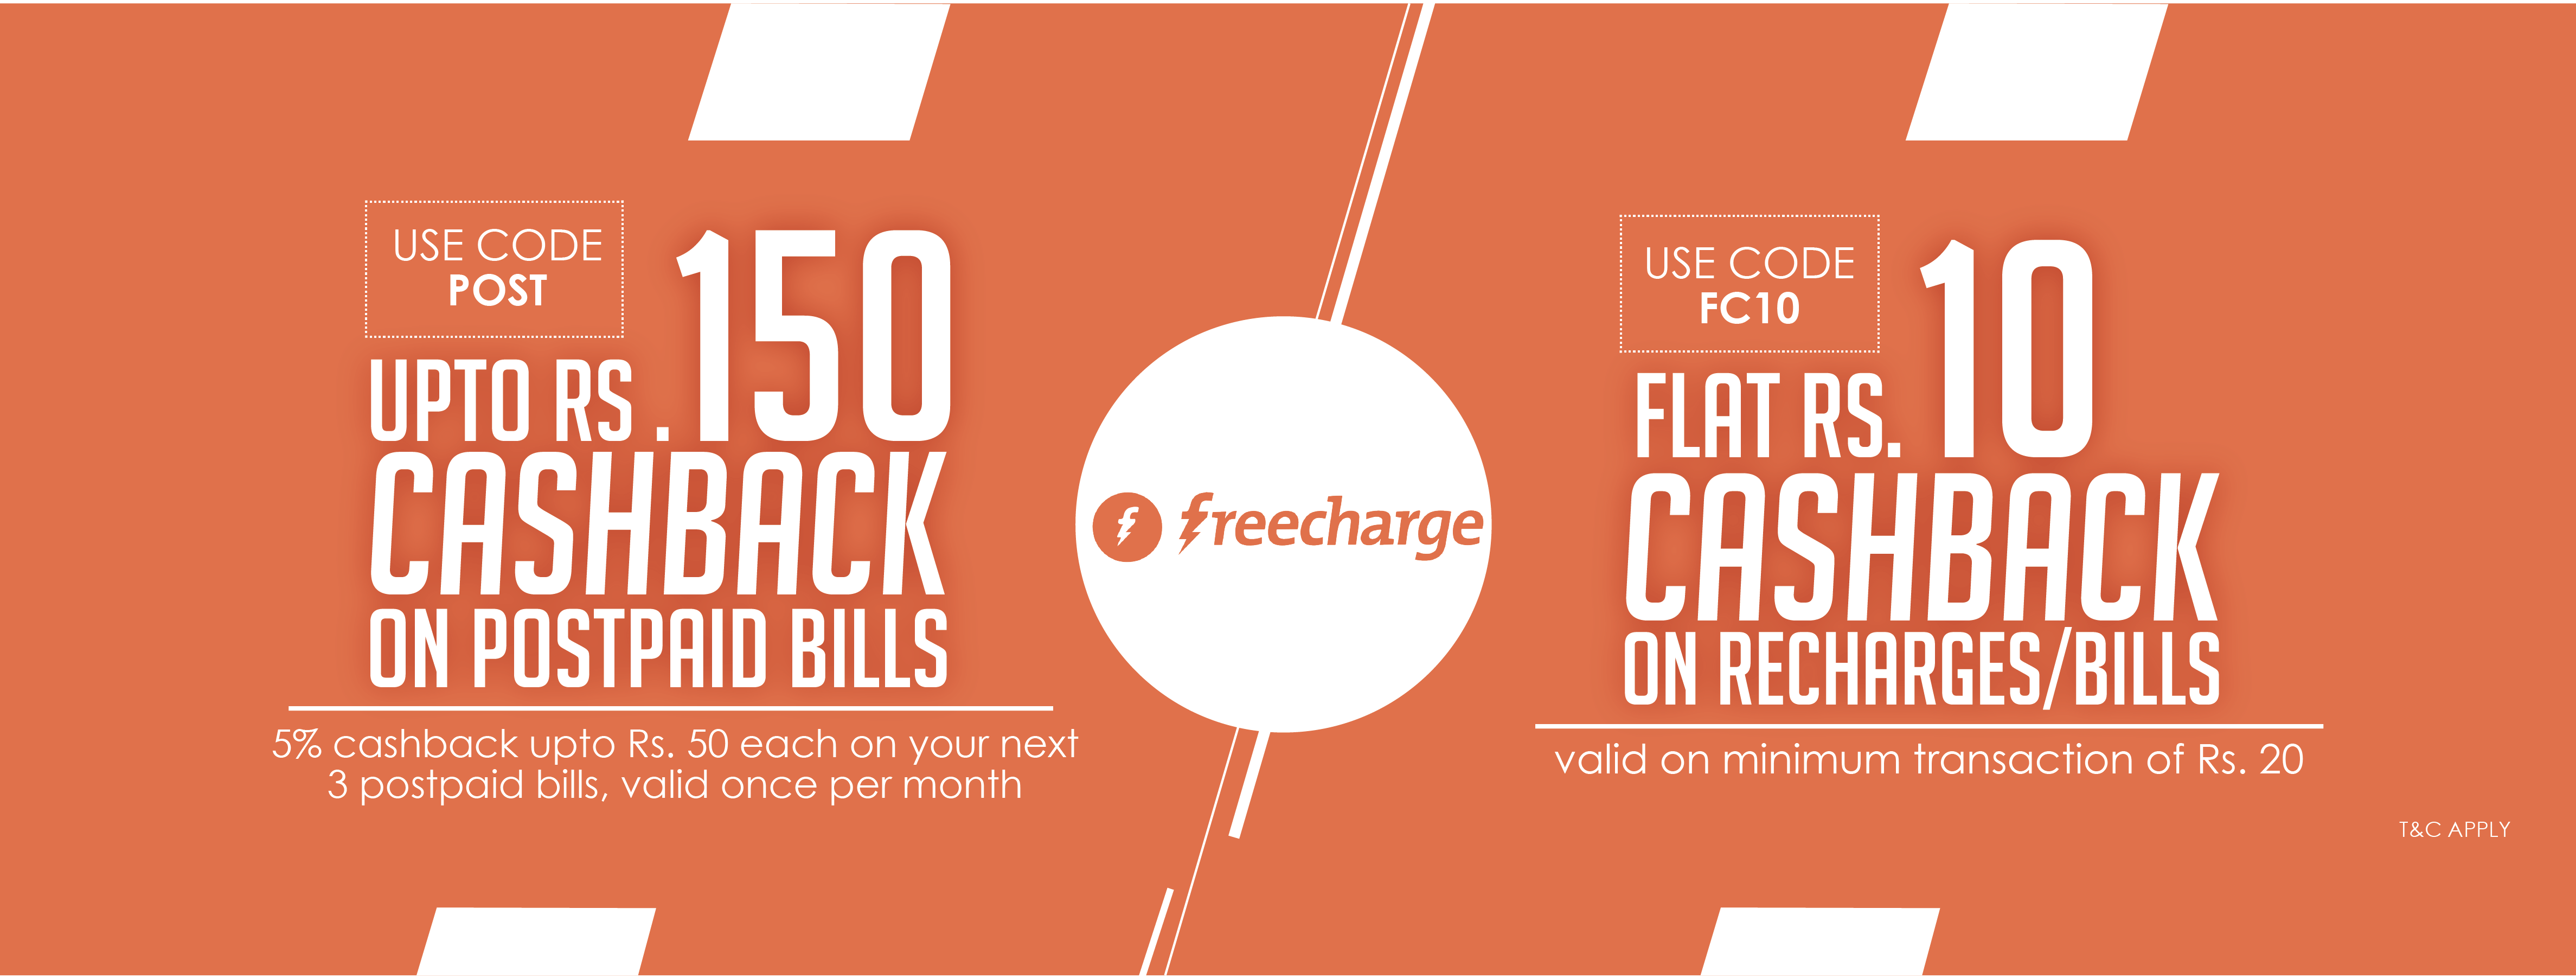 Upto Rs. 150 Cashback on Postpaid Bills + Flat Rs. 10 Cashback on Min. Recharge of Rs. 20